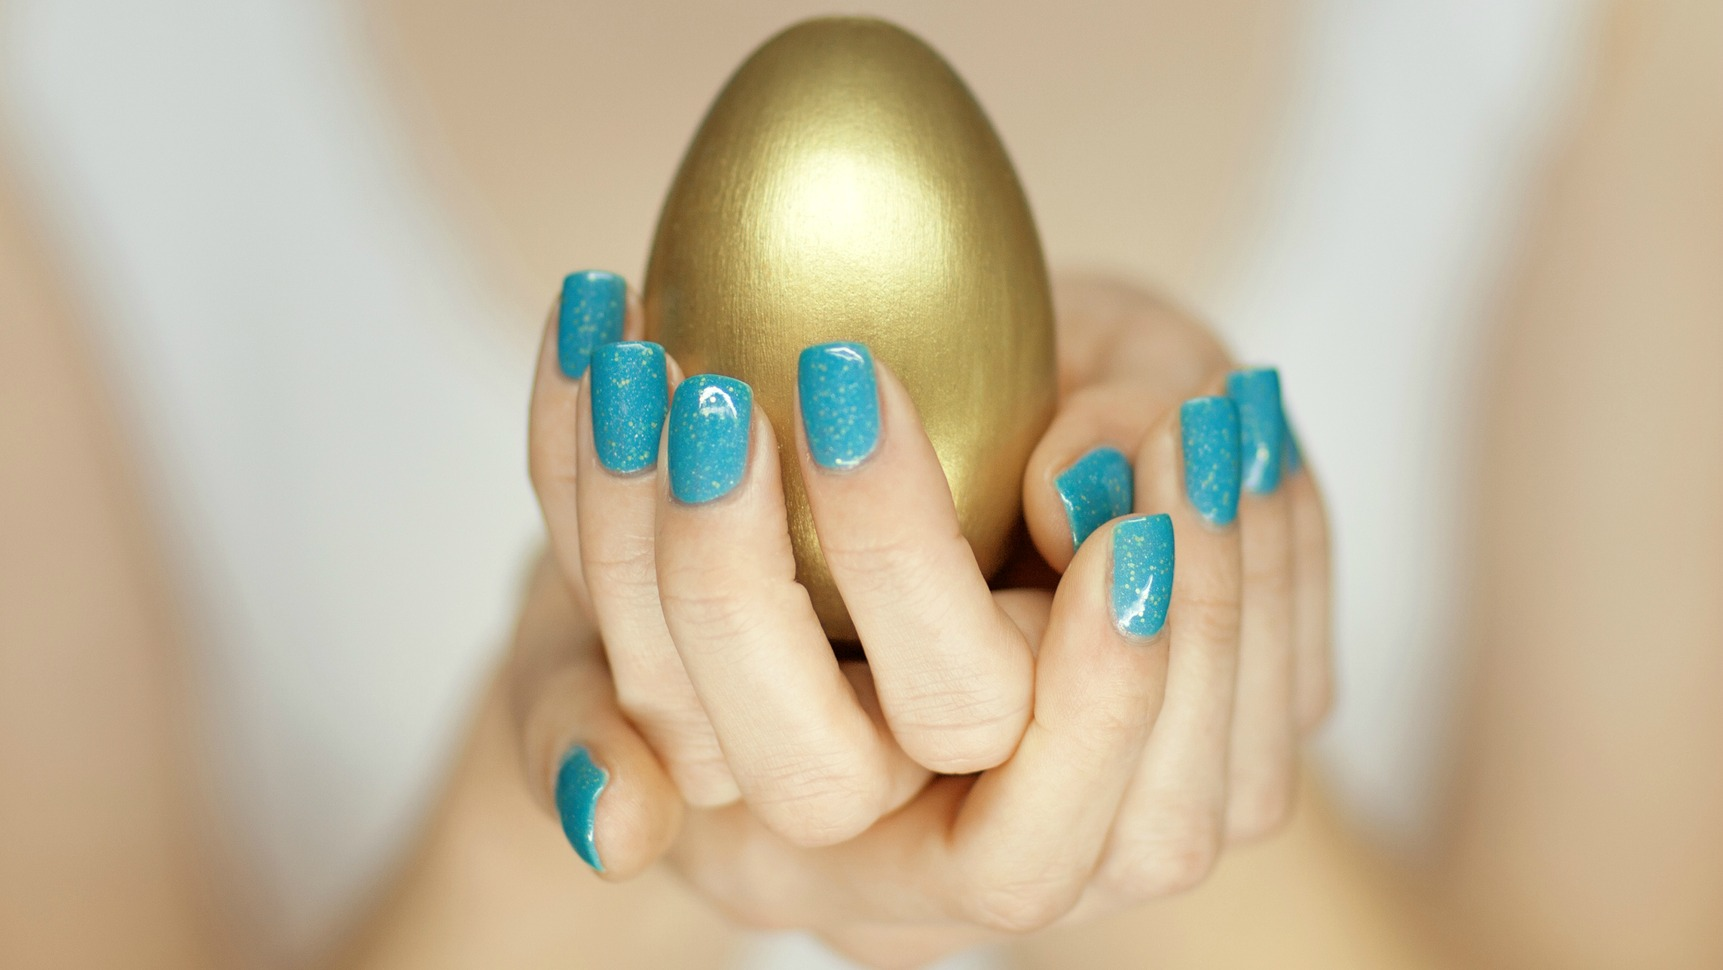 10 Easter Nail Designs You'll Want to Try This Weekend